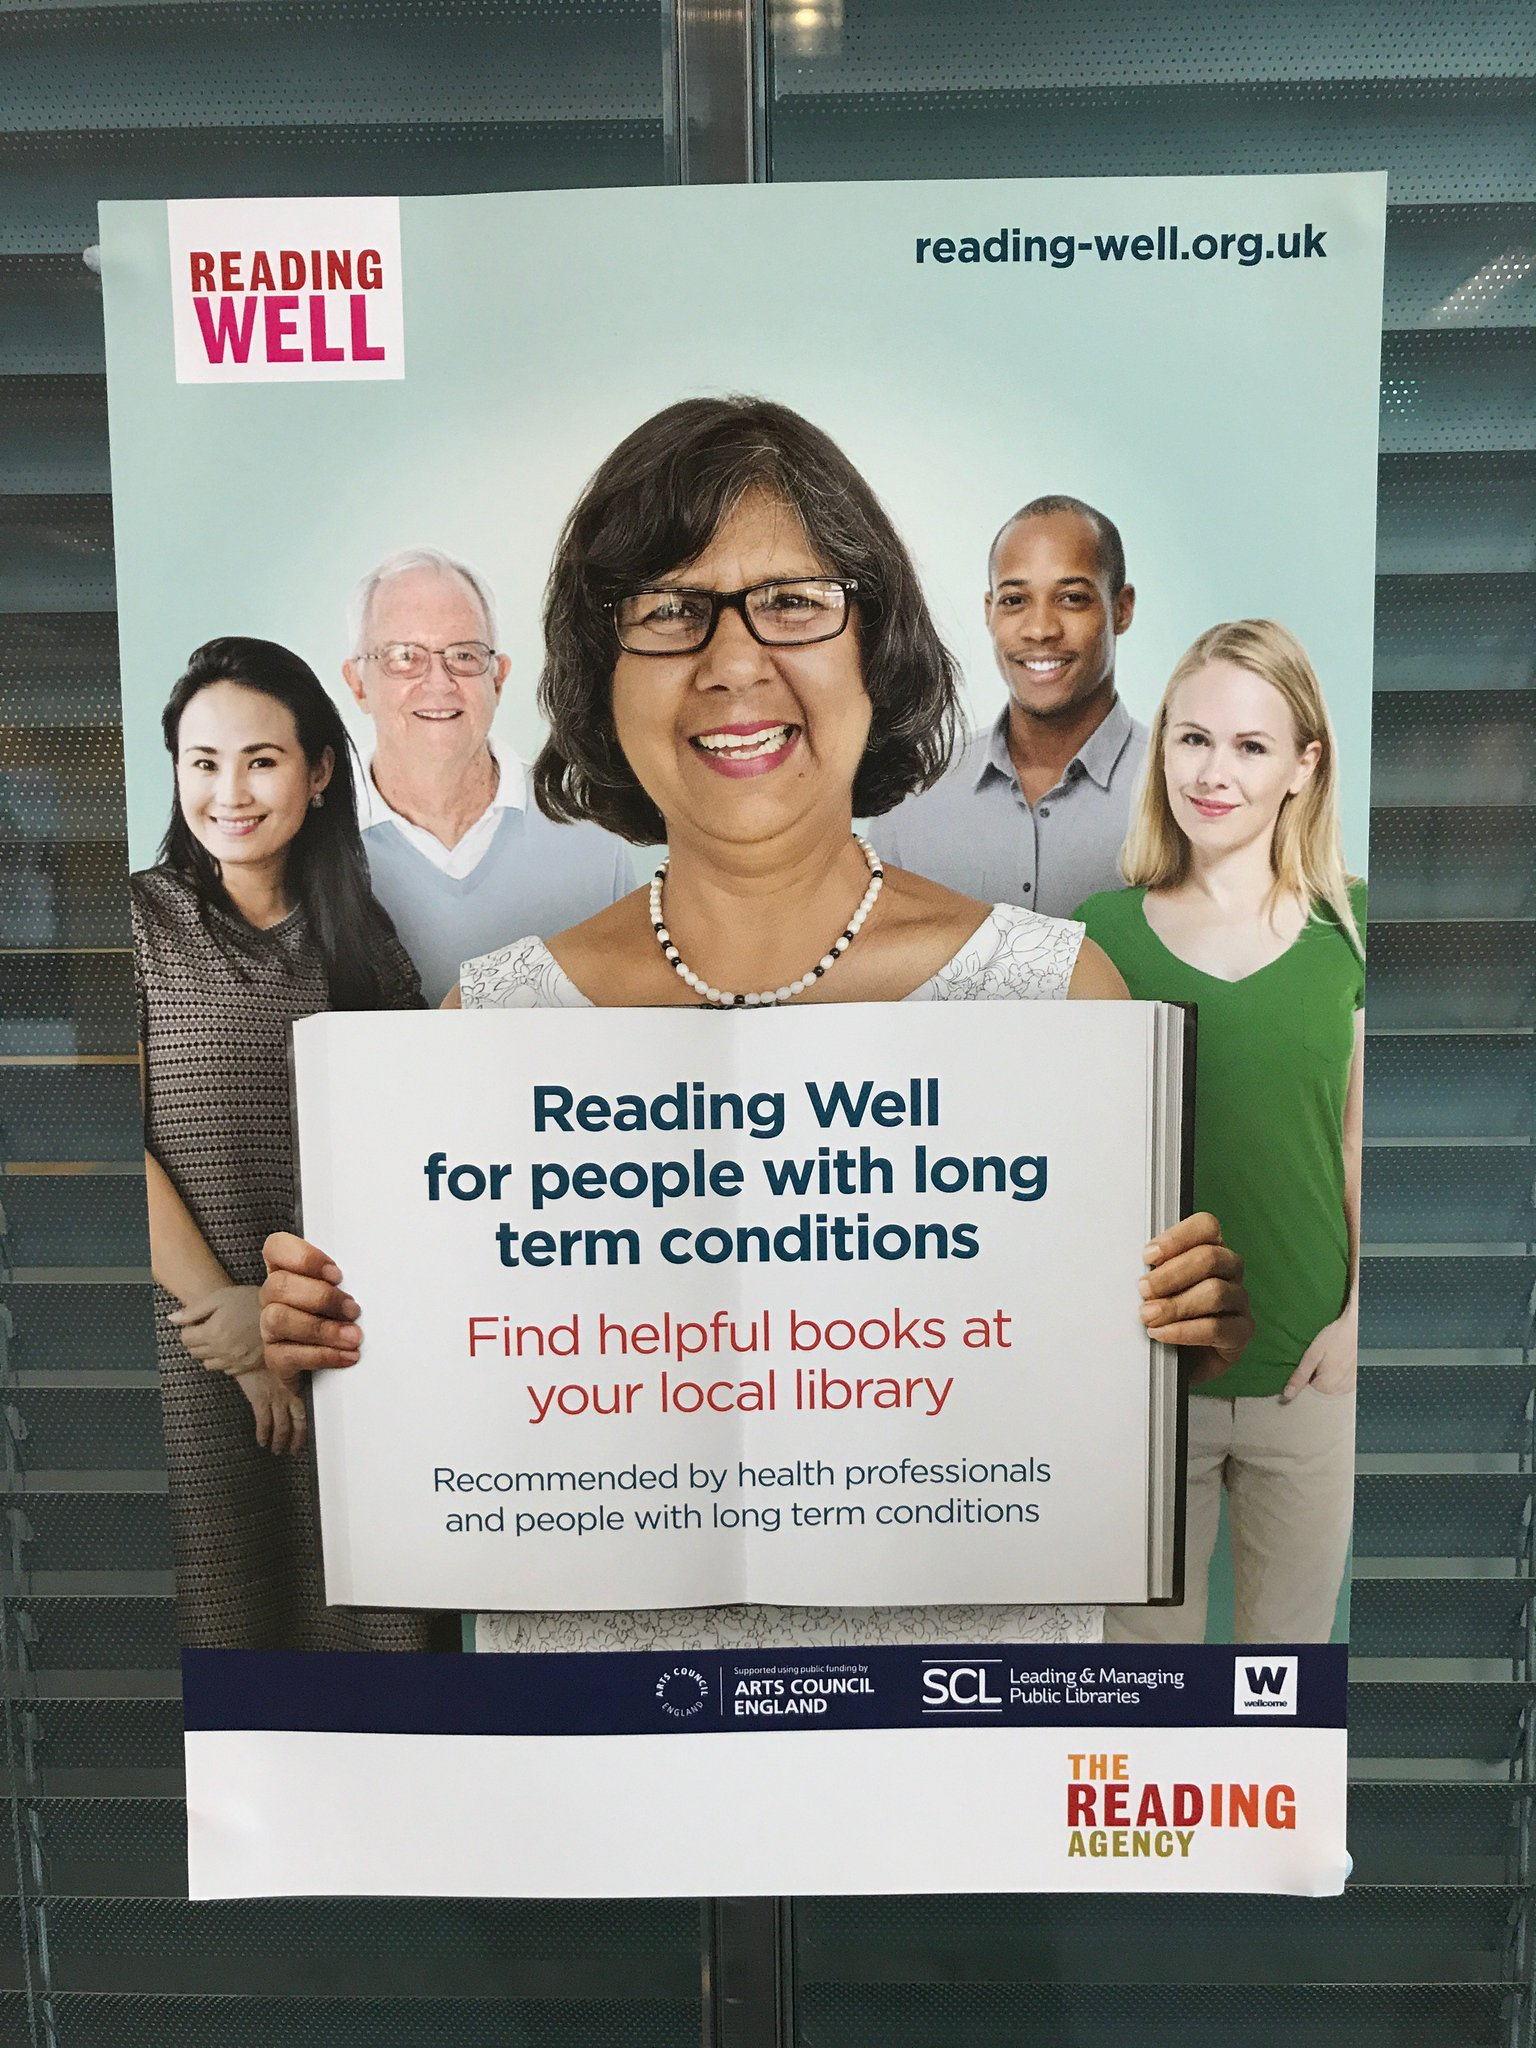 Just heard our book 'Mindfulness for Health' is now on the 'Books on Prescription' scheme. Rec by NHS, Royal College of GPs etc #ReadingWell https://t.co/34MuTJPUvz